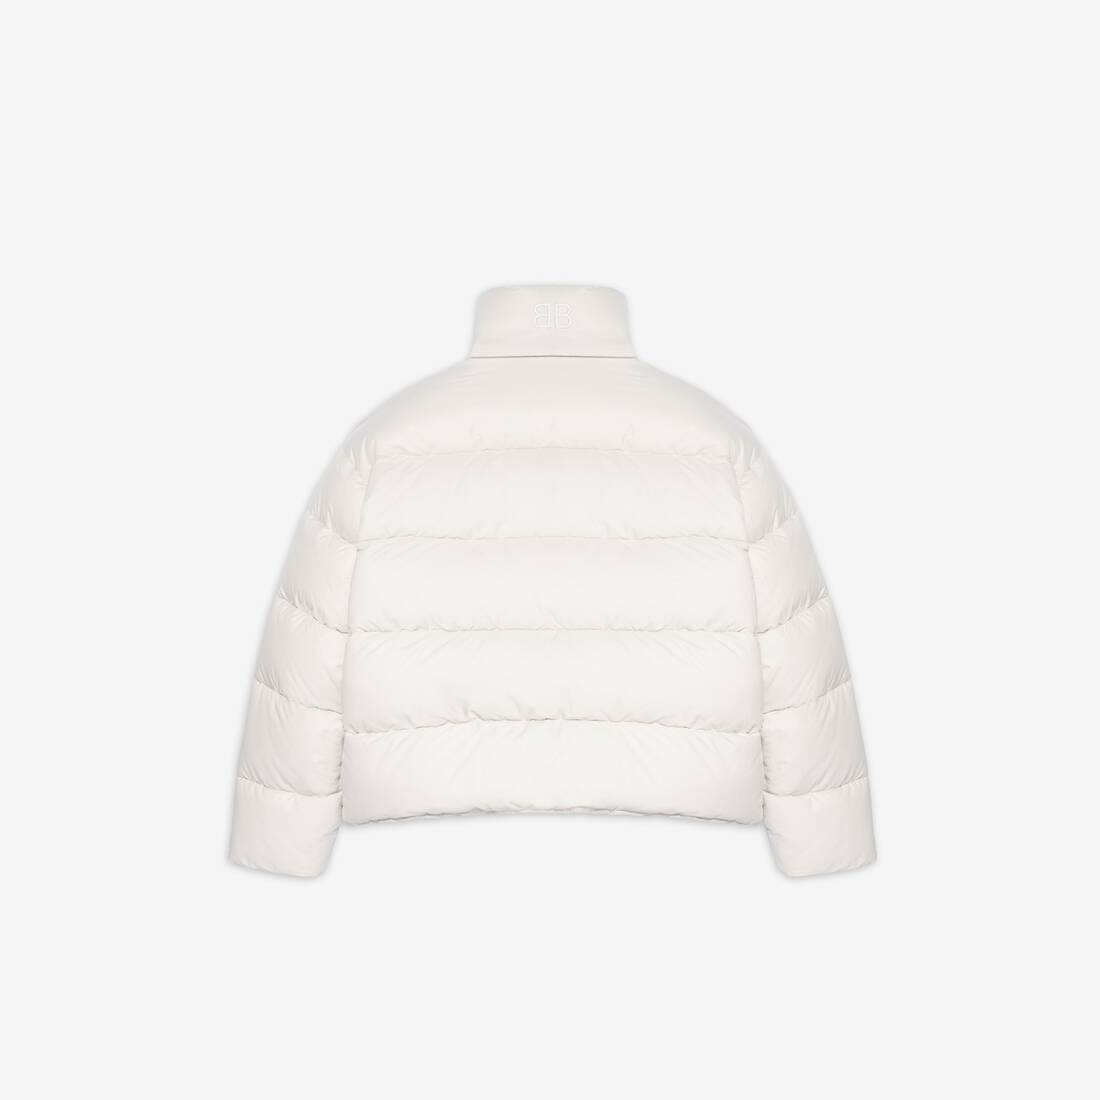 Display zoomed version of bb puffer jacket 2